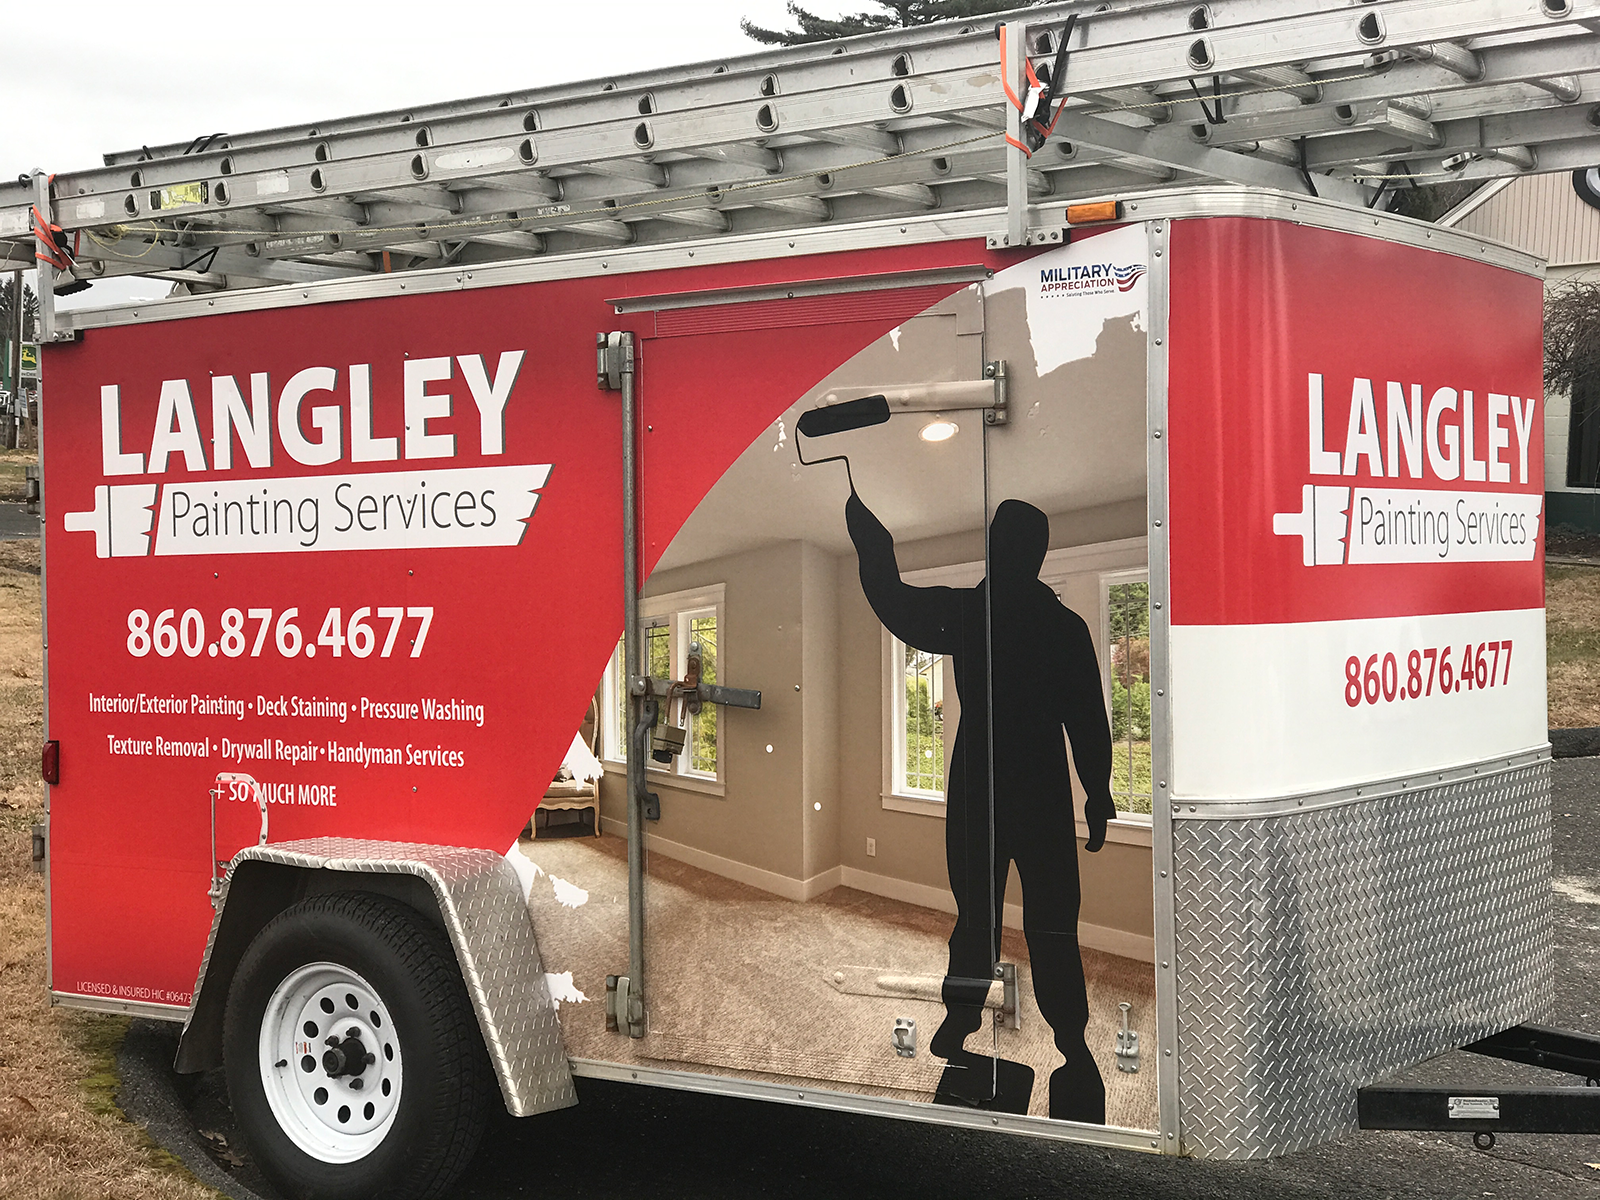 Trailer Design for Langley Painting Services